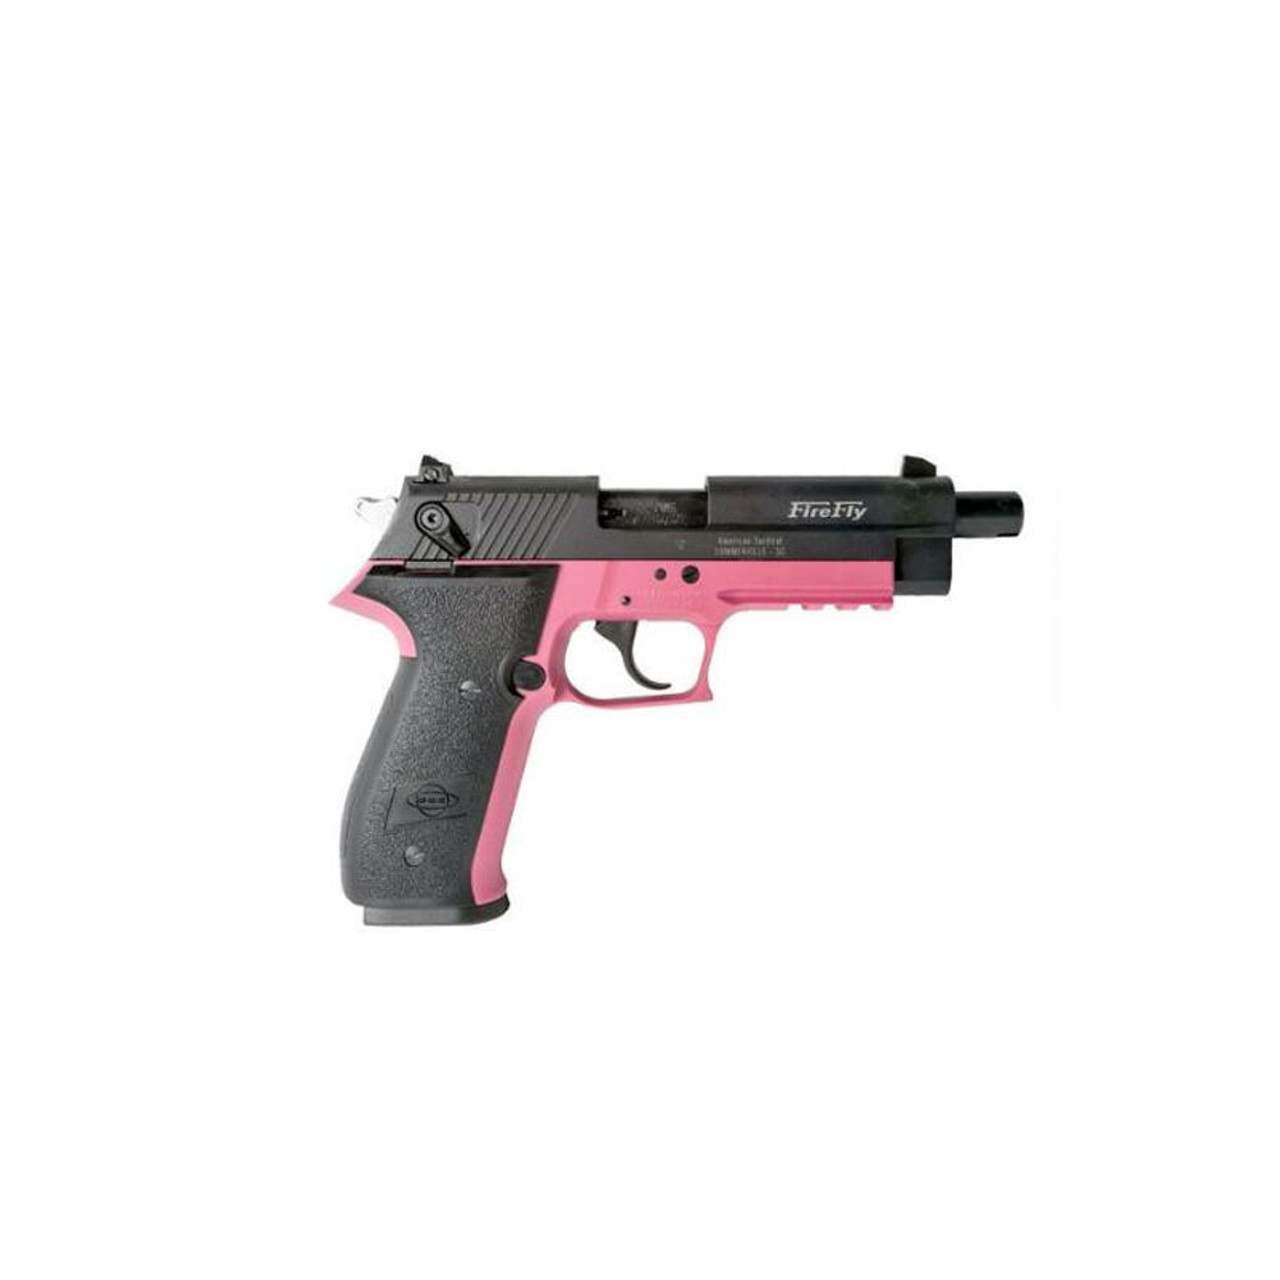 AMERICAN TACTICAL IMPORTS GSG FireFly HGA  22 LR 4in 10rd Pink  Semi-Automatic Pistol (GERG2210FFP)